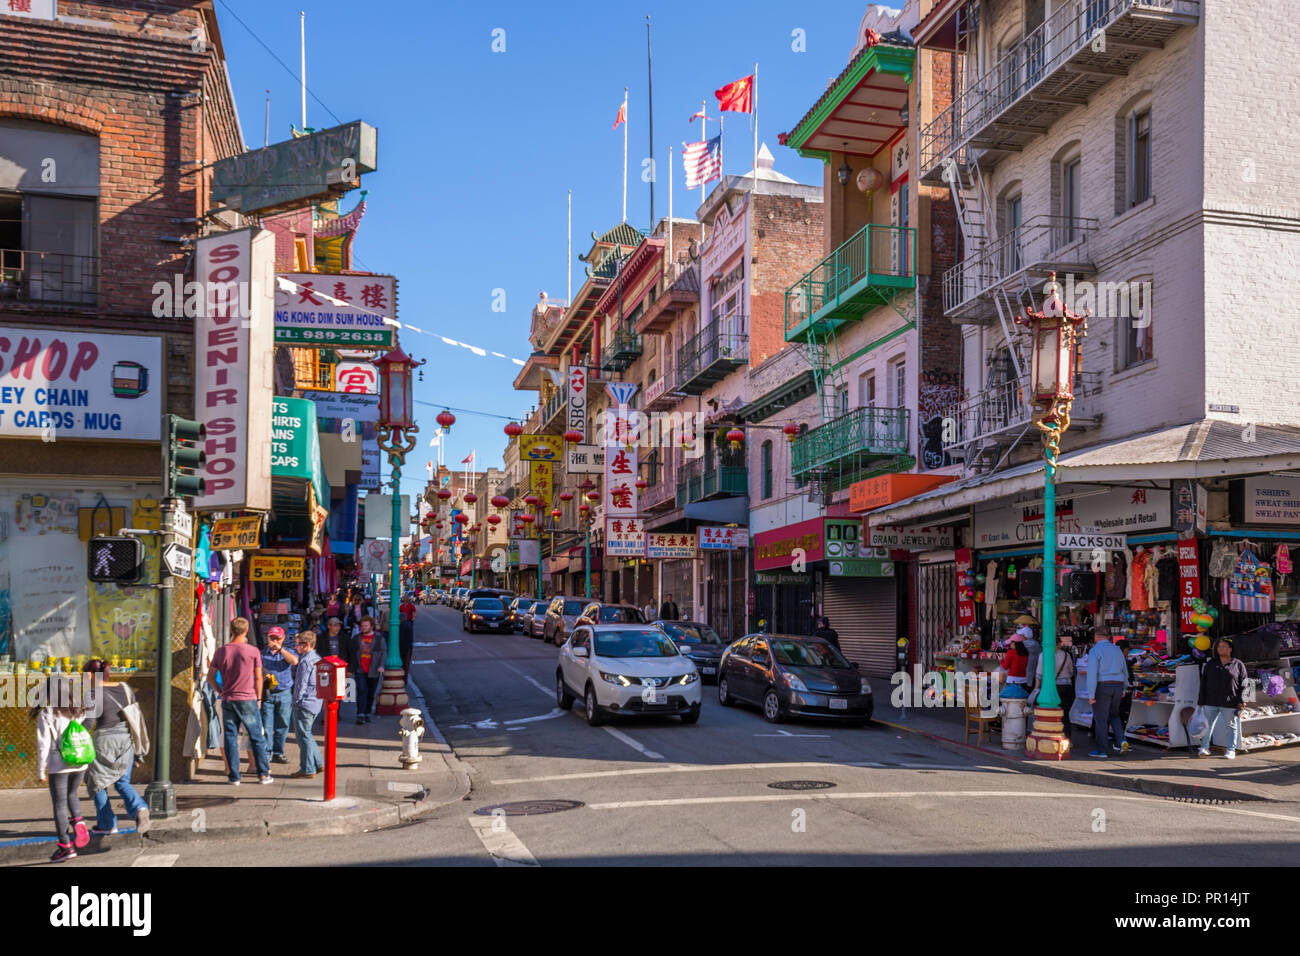 View of busy street in Chinatown, San Francisco, California, United States of America, North America Stock Photo